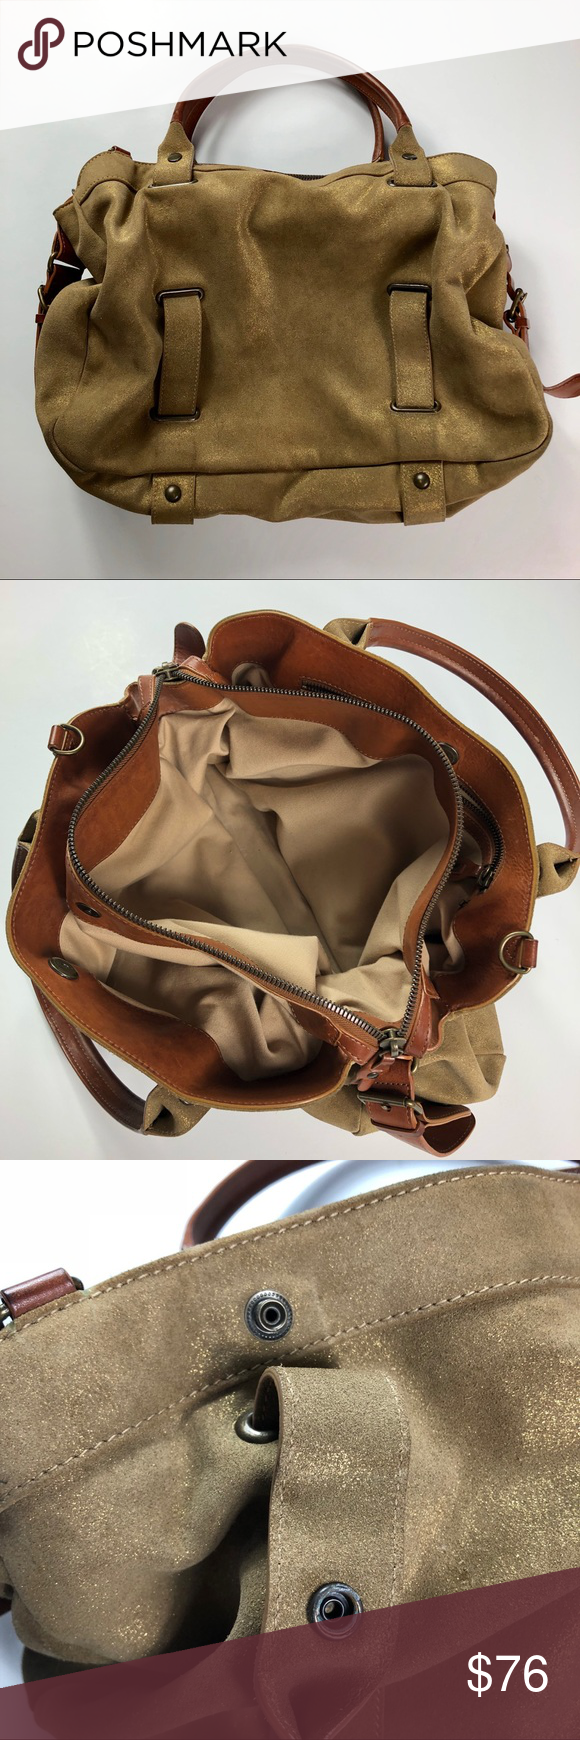 075ee96e6b Theory Suede Leather Handbag Theory suede handbag w leather handles    detailing. Truly gorgeous craftsmanship. Color is a dark tan accented w gold .